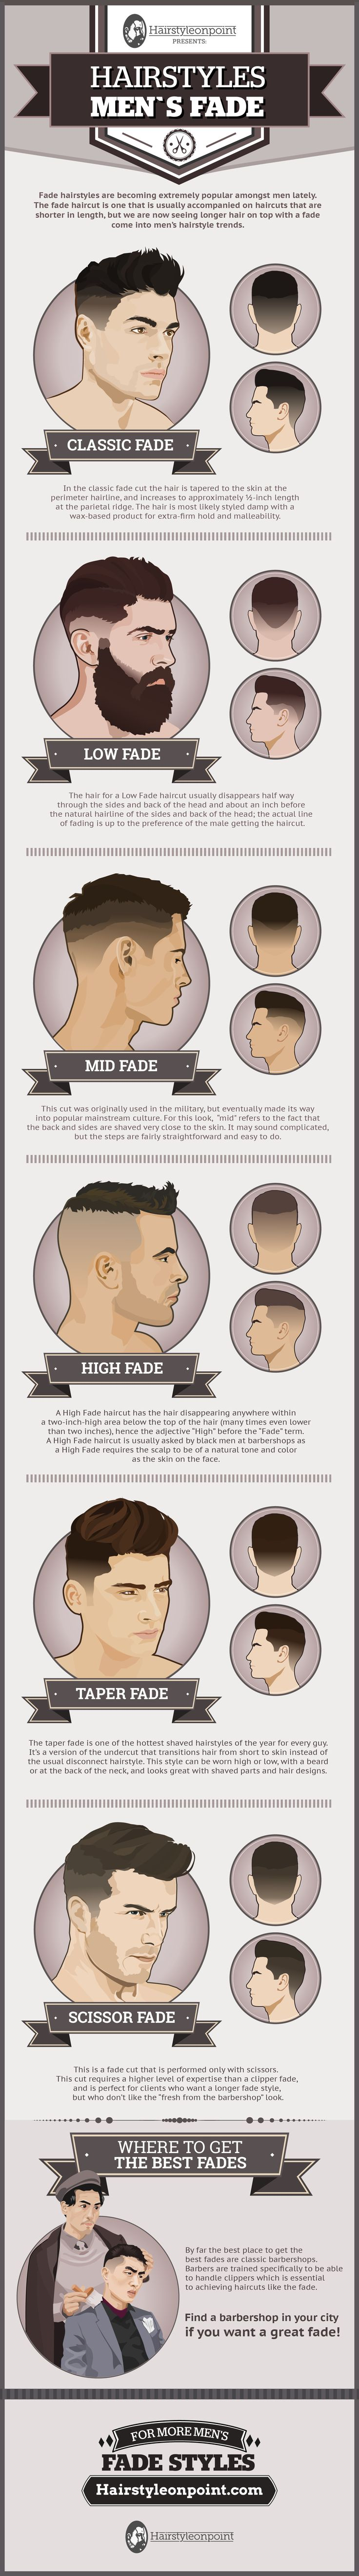 Hipster men hairstyles 25 hairstyles for hipster men look - 132 Best Men Haircuts Images On Pinterest Hairstyles Hair And Menswear